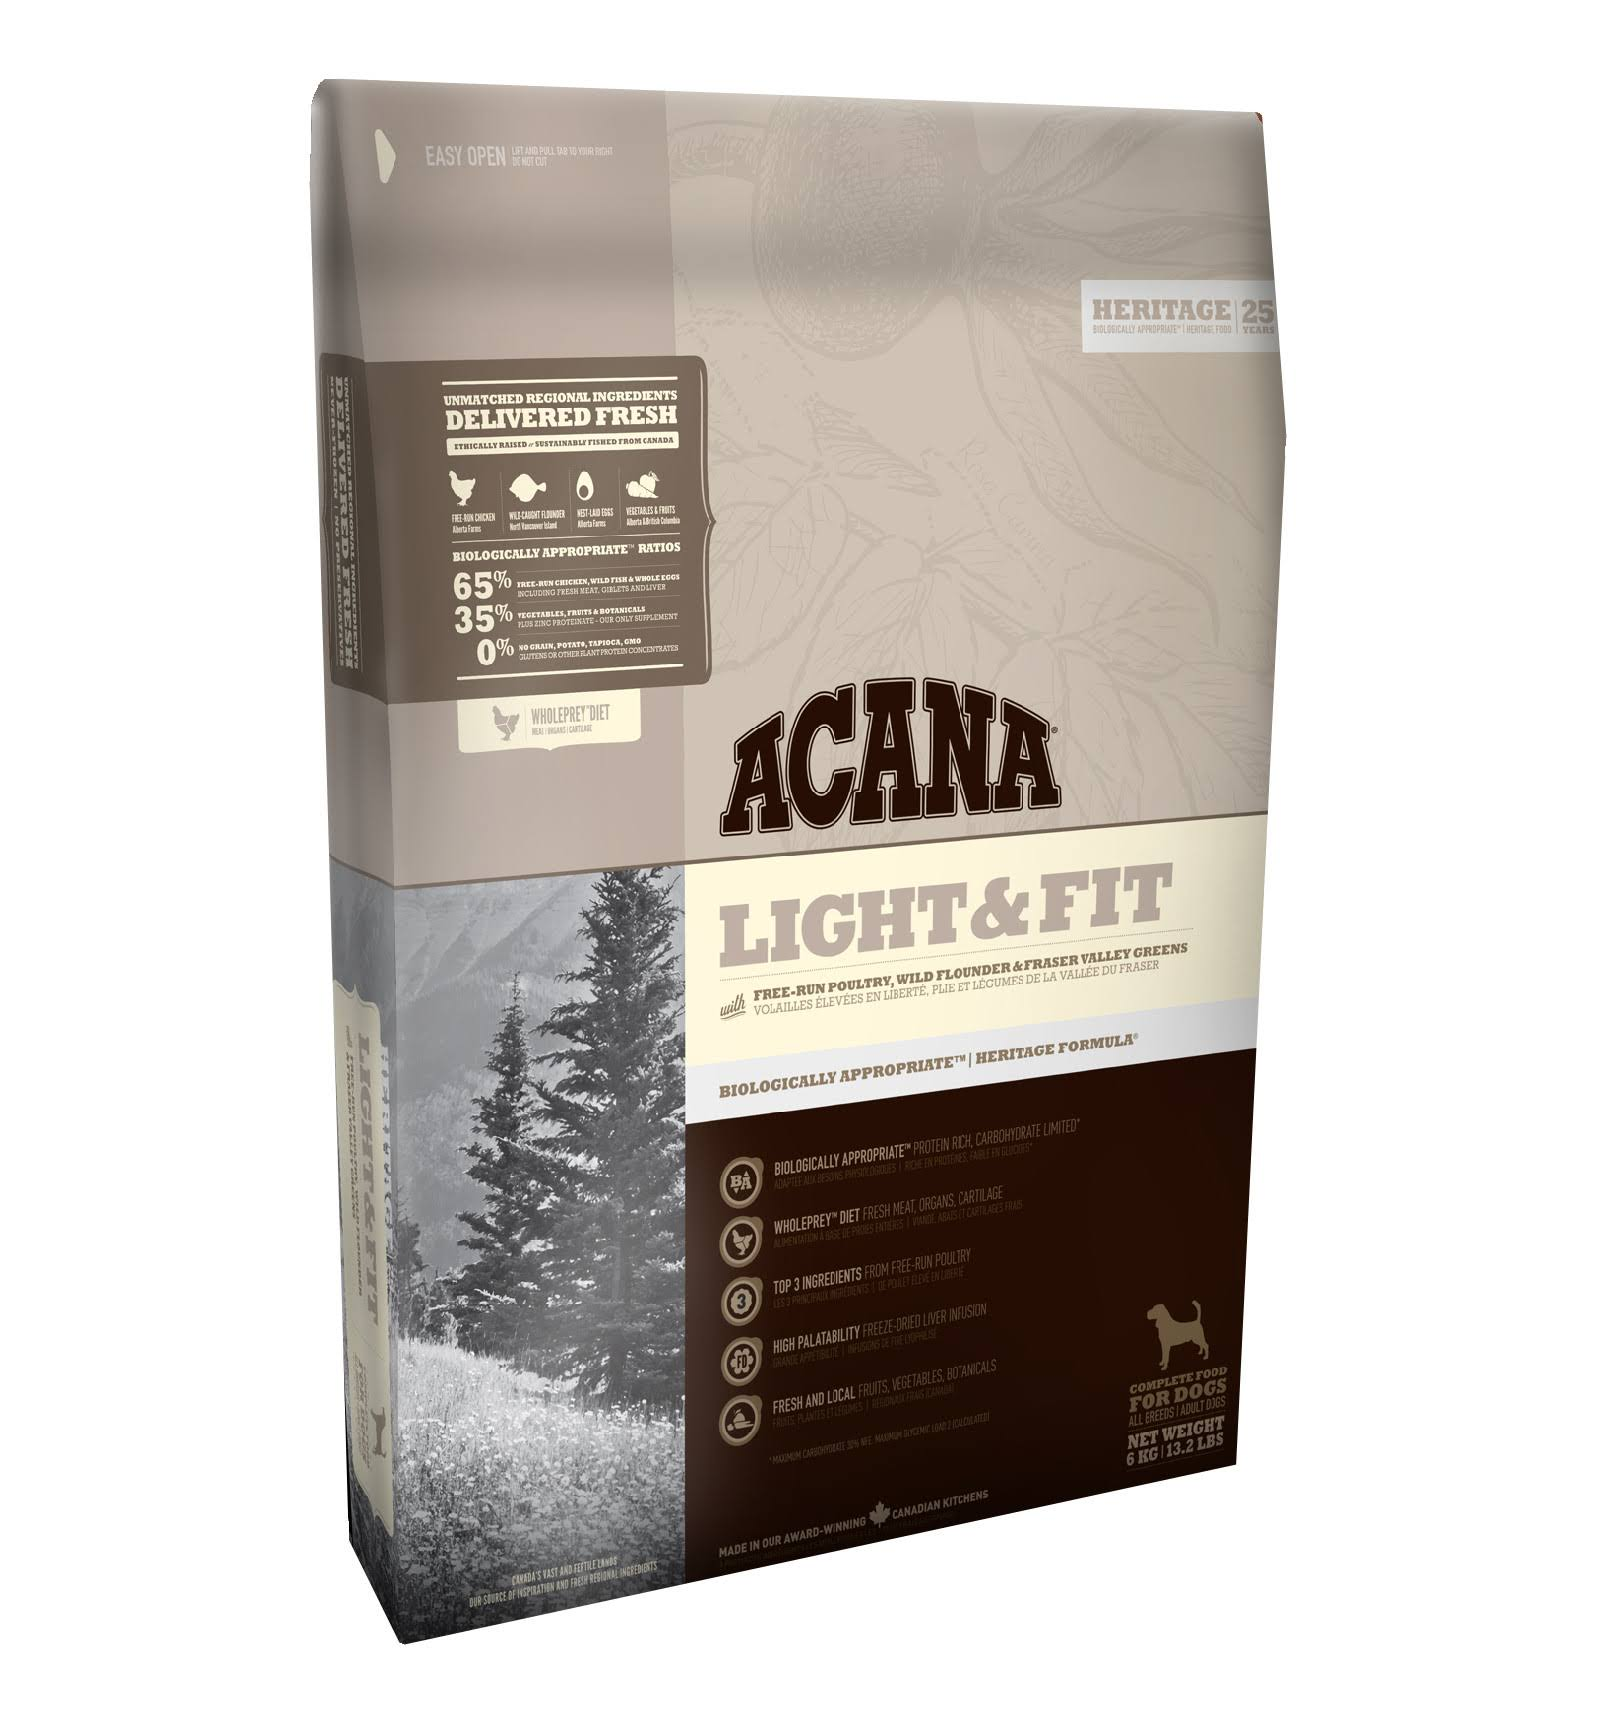 Acana Heritage Light & Fit Dog Food 6kg